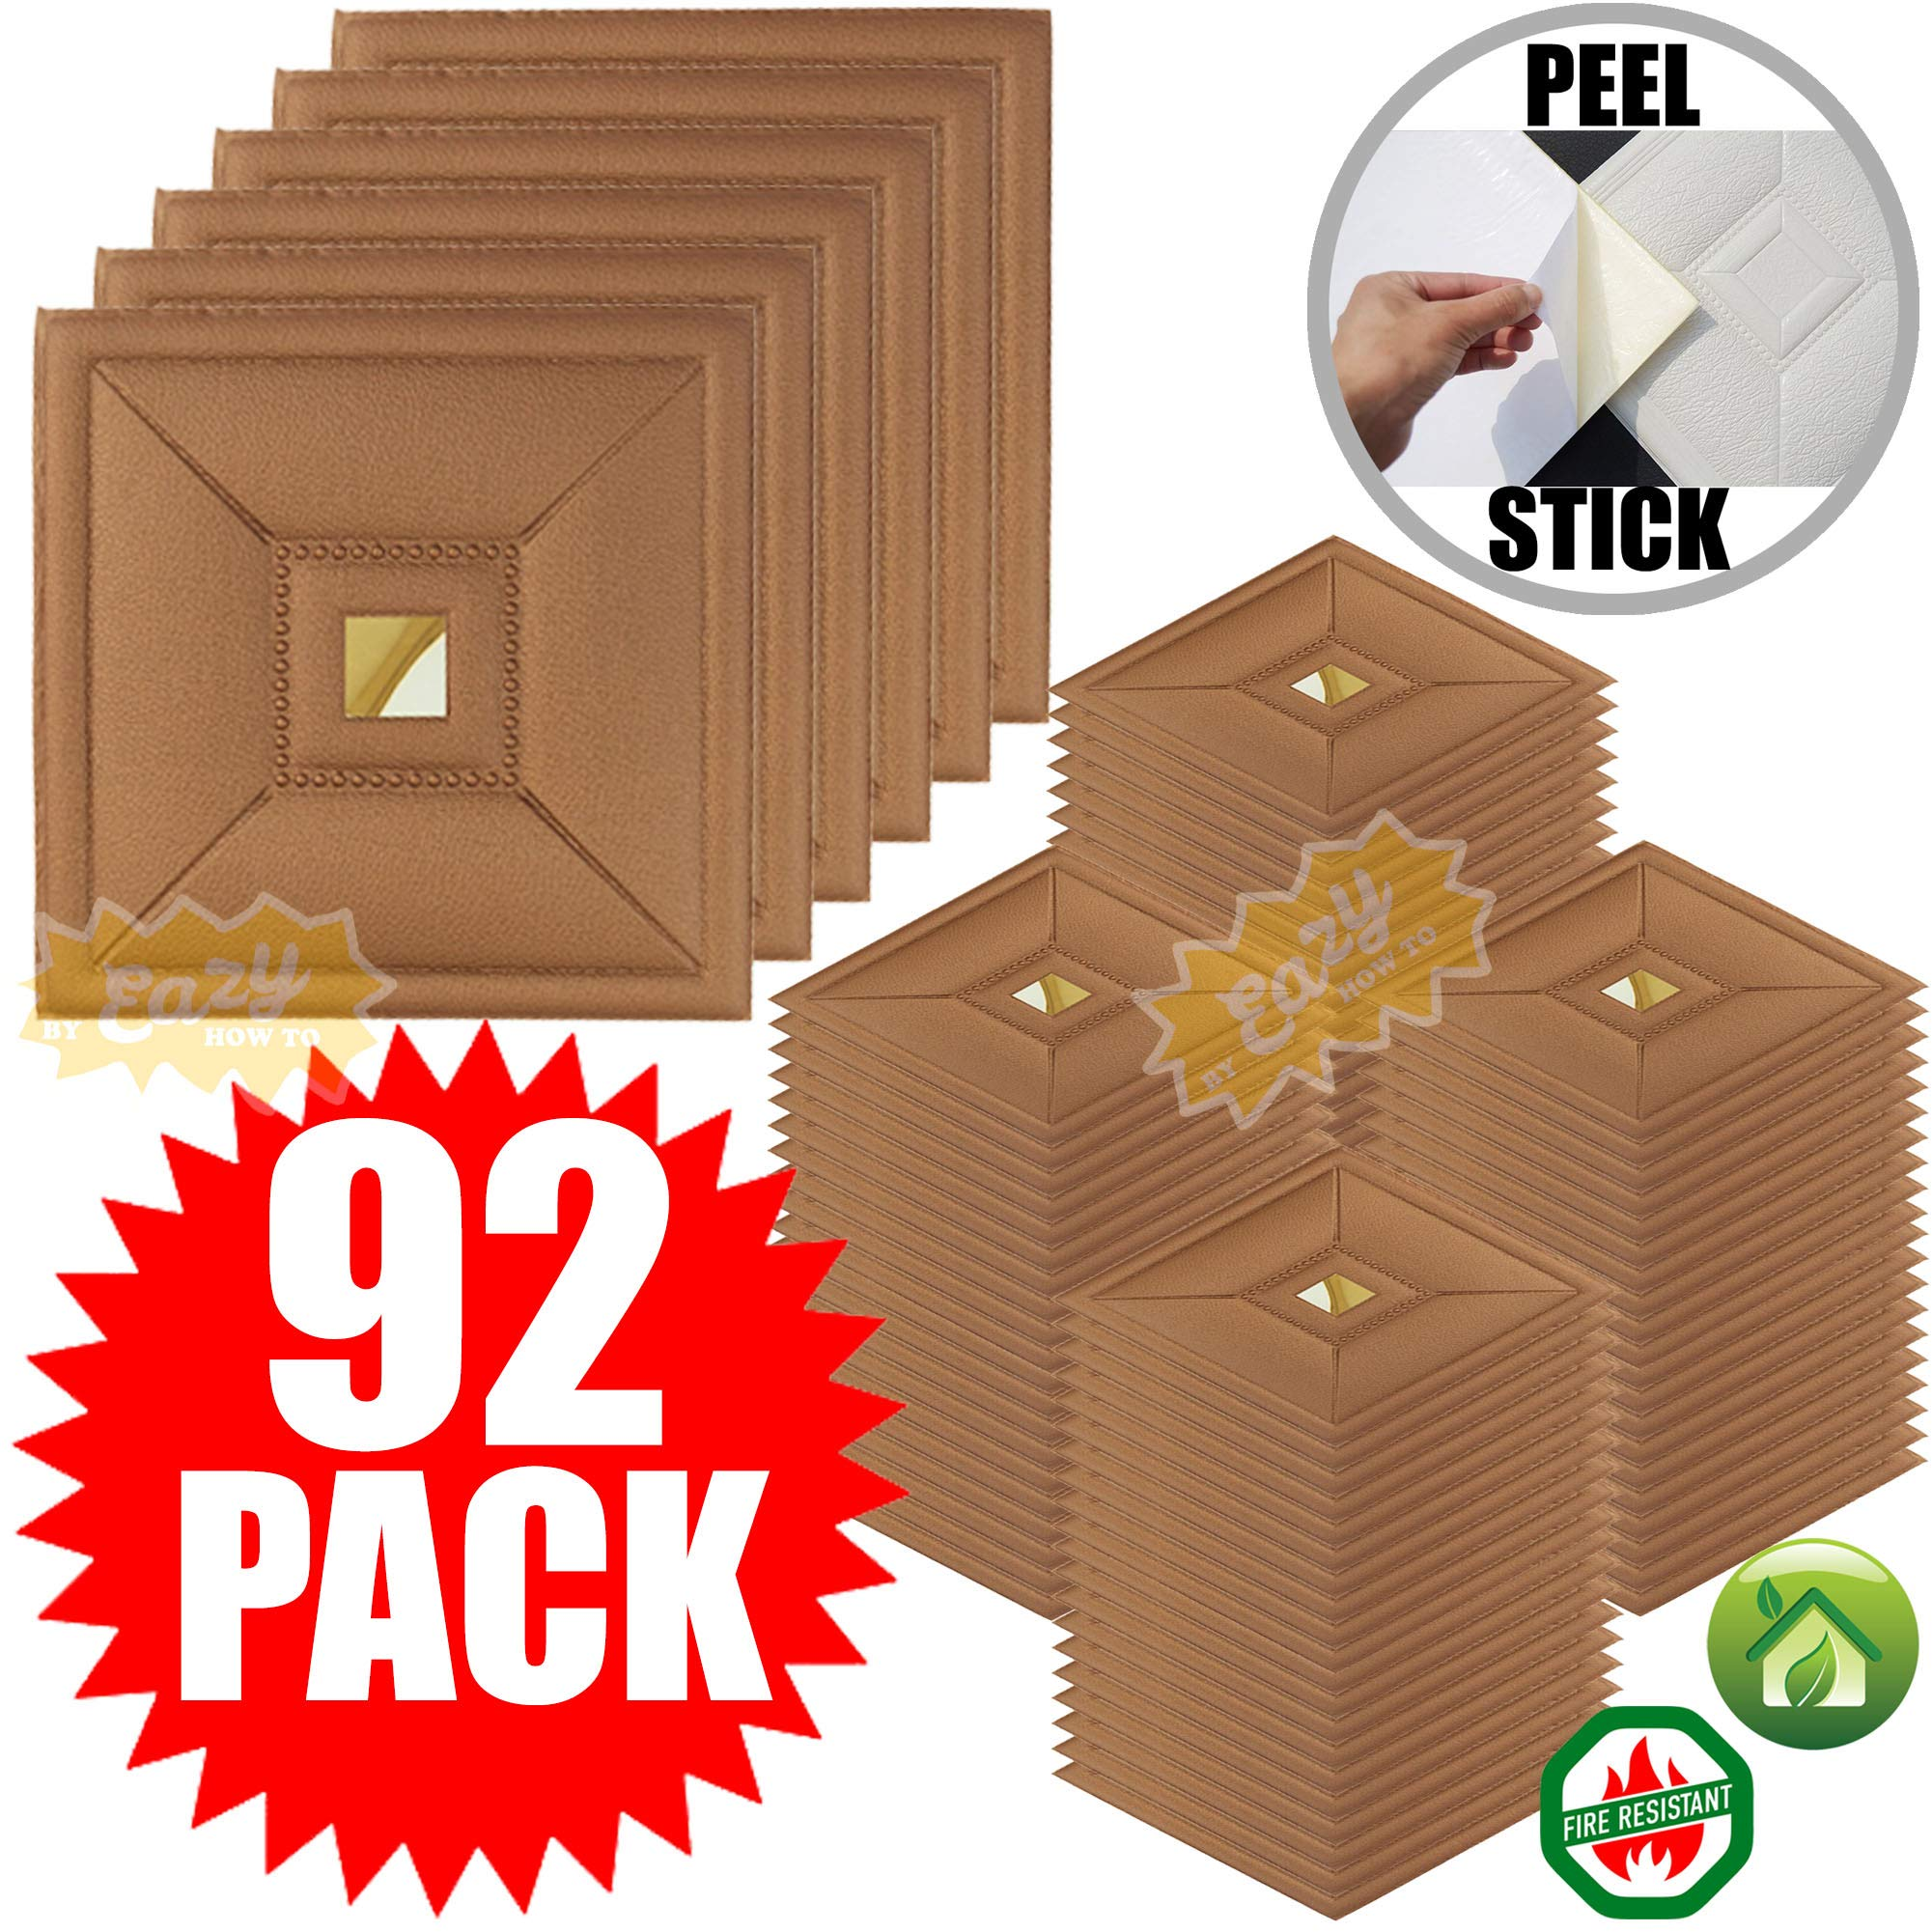 Eazy How To 92 Pack Ceiling Tiles 12''x12'' Peel and Stick Easy Installation Textured Panels - Metallic Copper